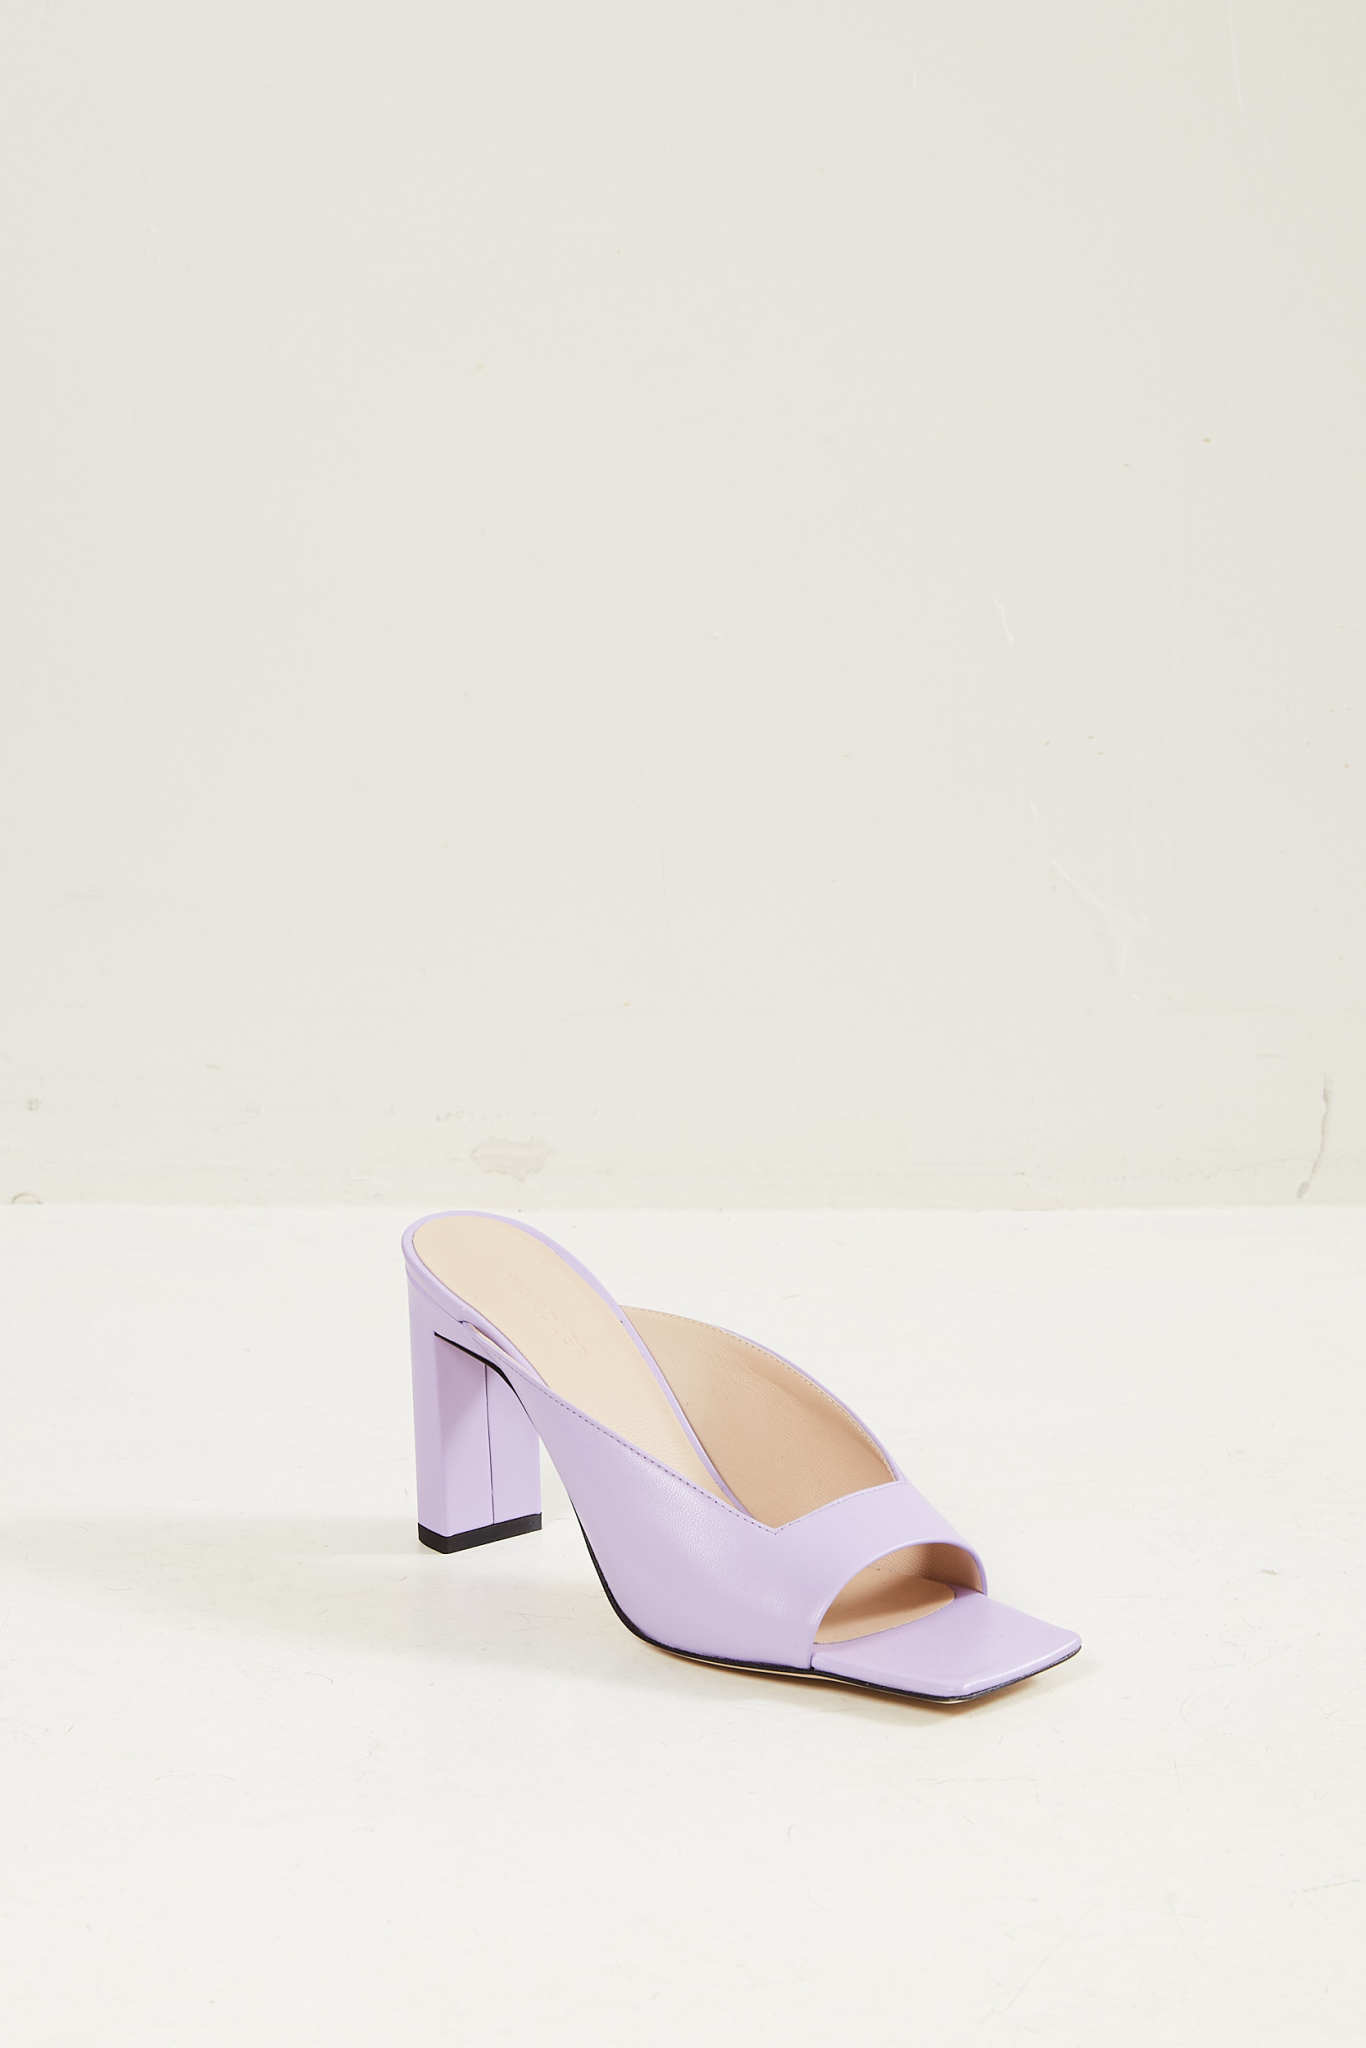 Wandler Isa lambskin leather sandal